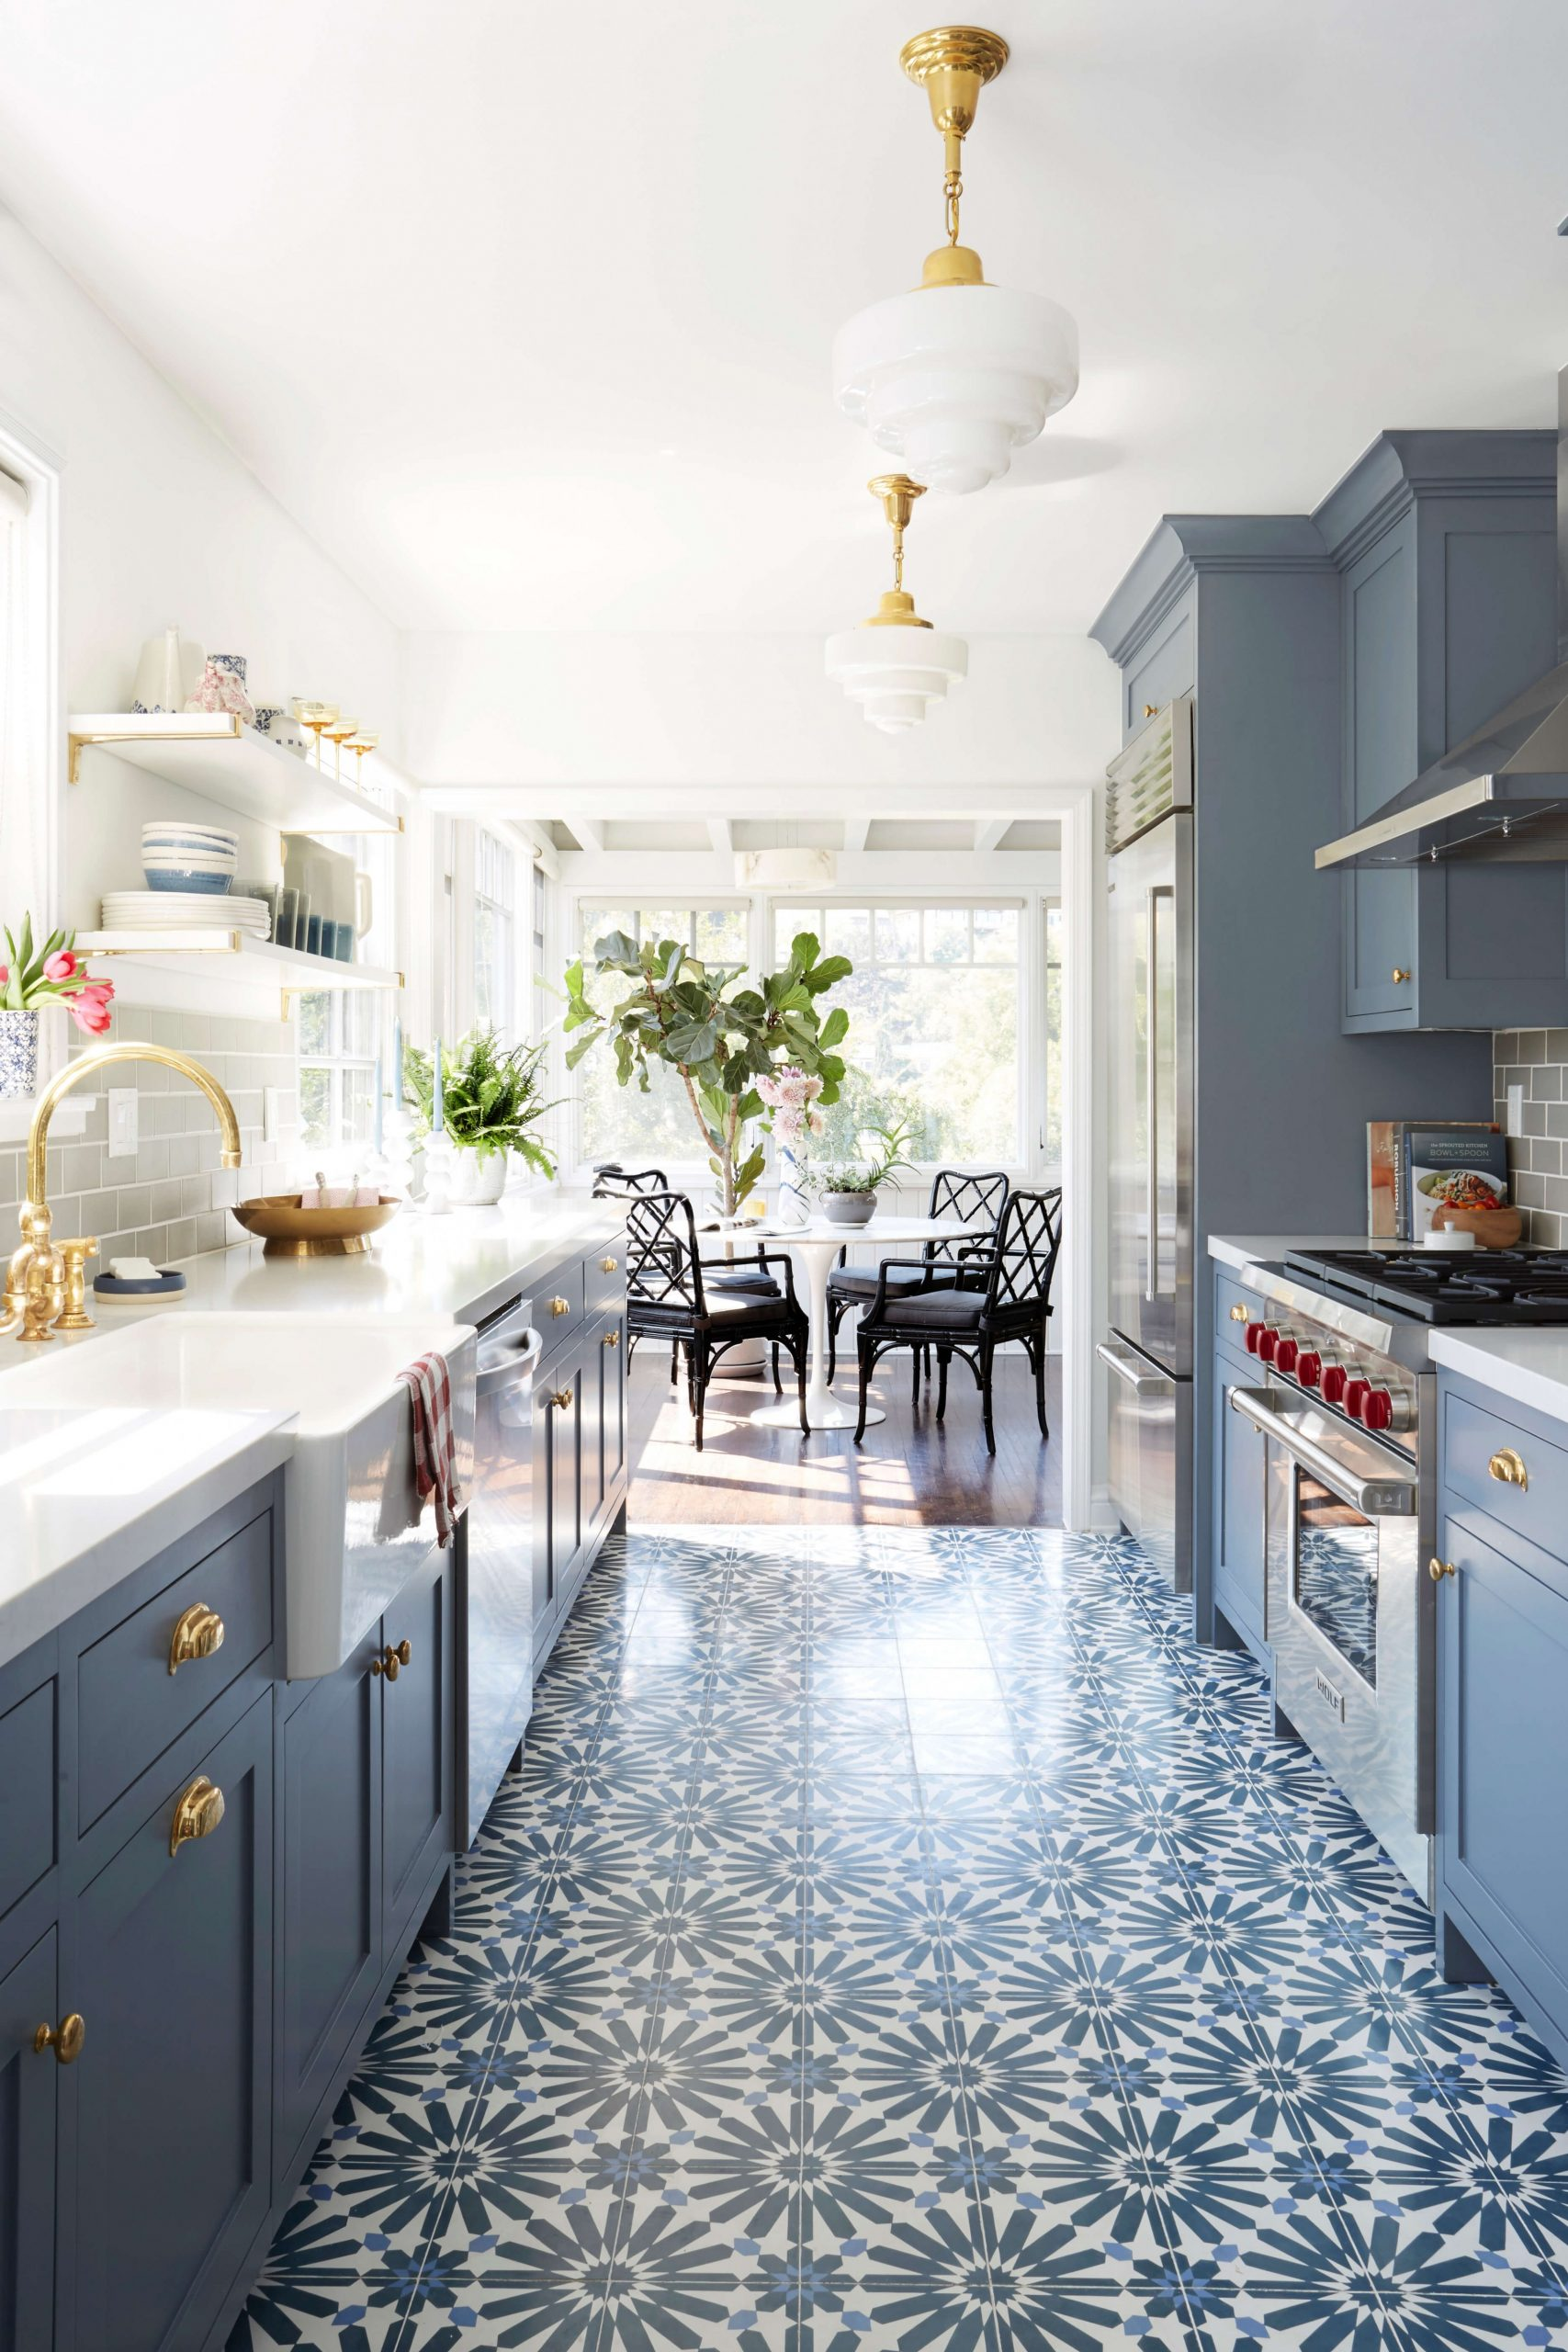 9 Small Kitchen Design Ideas That Make the Most of a Tiny Space  - Dining Room Kitchen Design Ideas